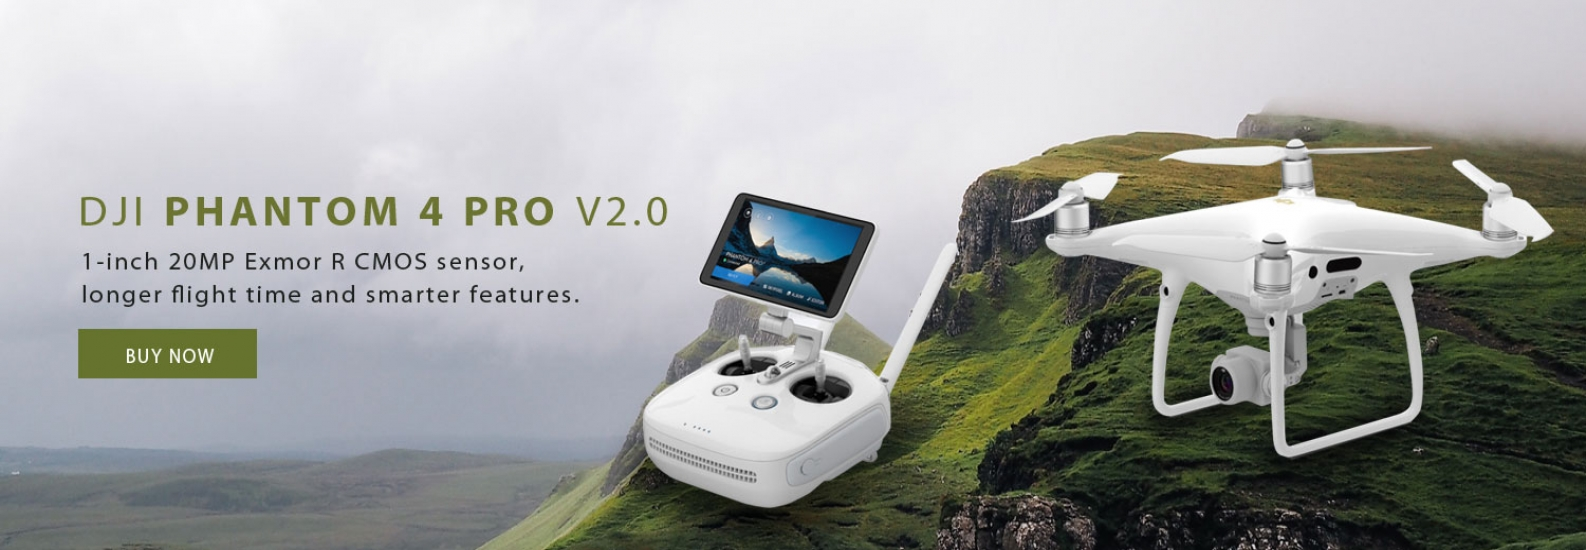 https://www.algadgets.com/dji-phantom-4-pro-v2-0-dubai-uae